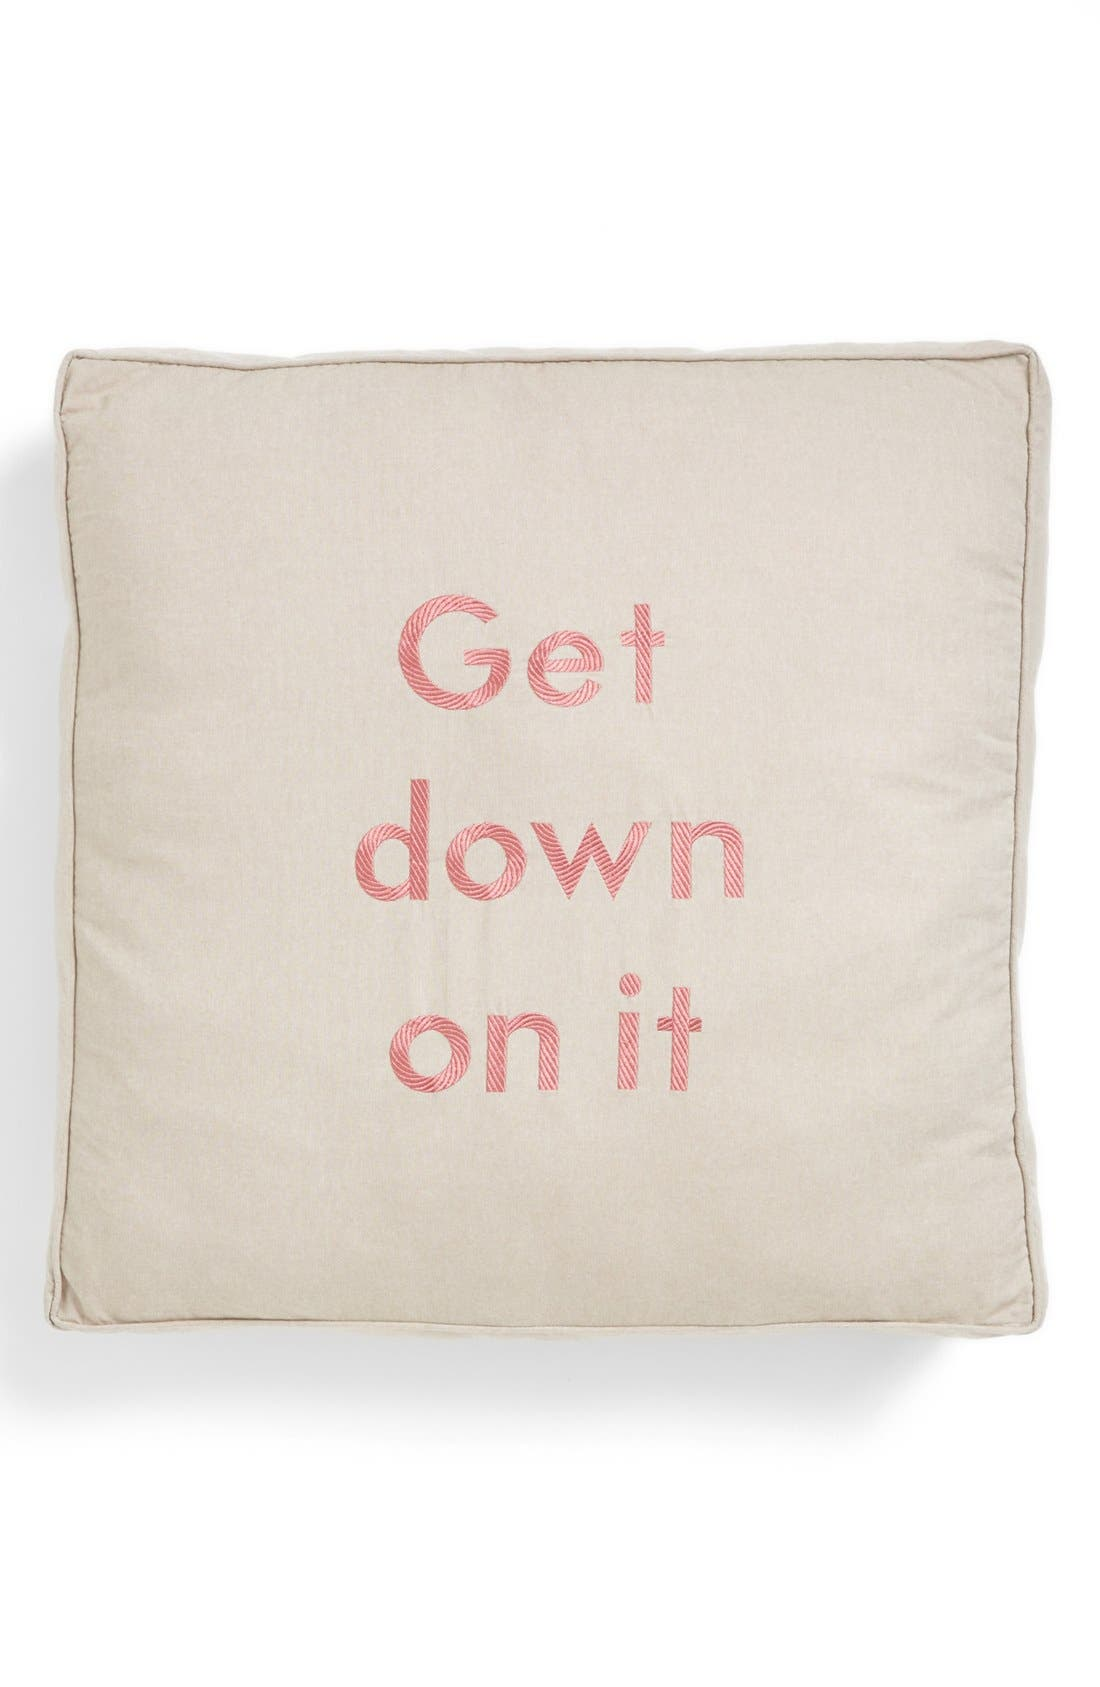 Main Image - Levtex 'Get Down on It' Floor Pillow